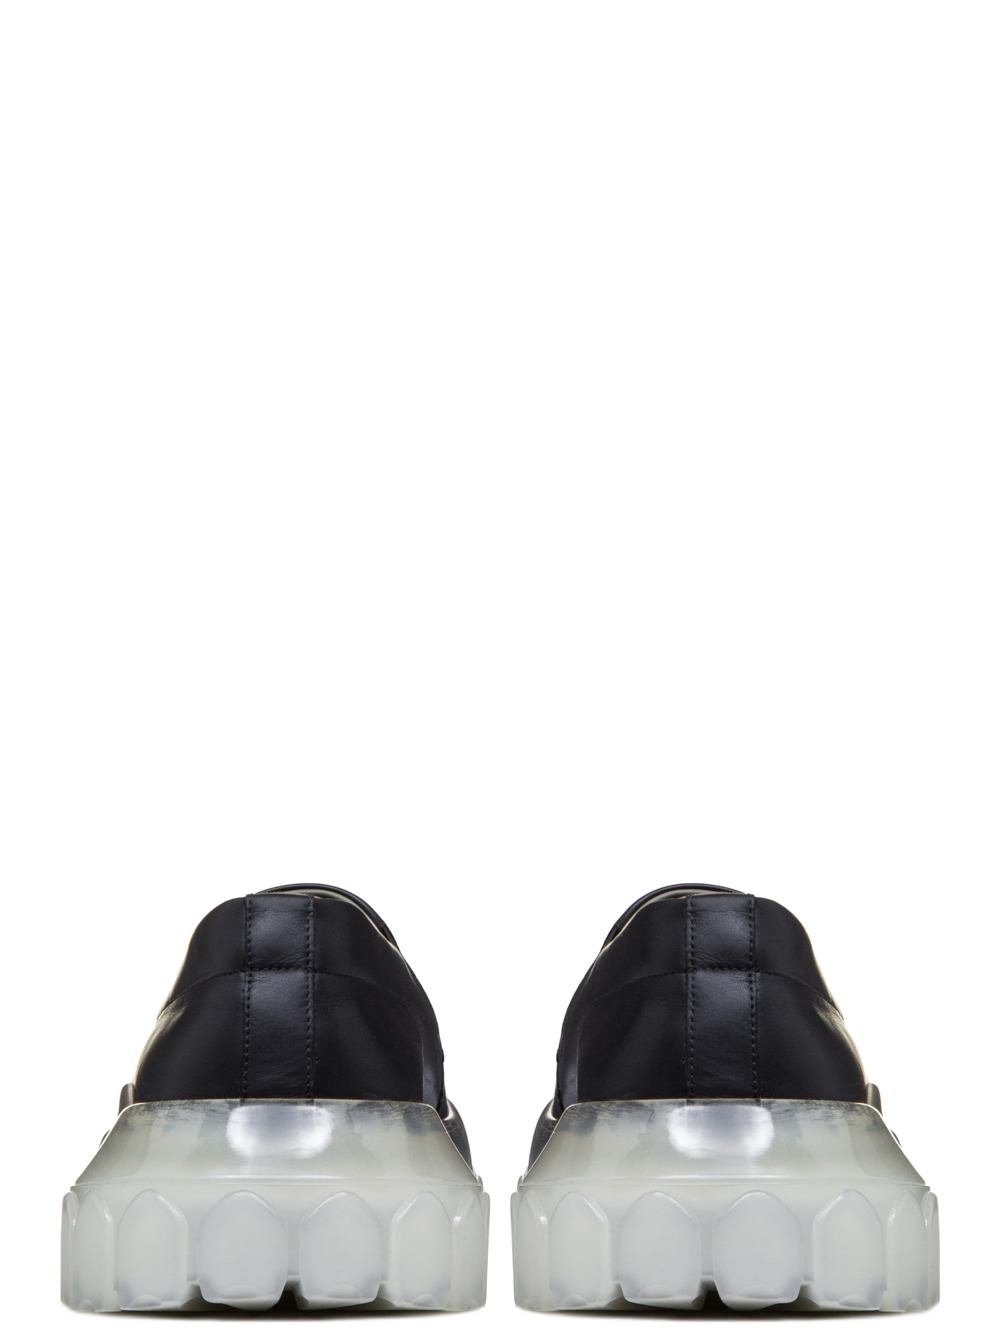 RICK OWENS SS19 BABEL TRACTOR BOAT SNEAKERS IN BLACK CALF LEATHER